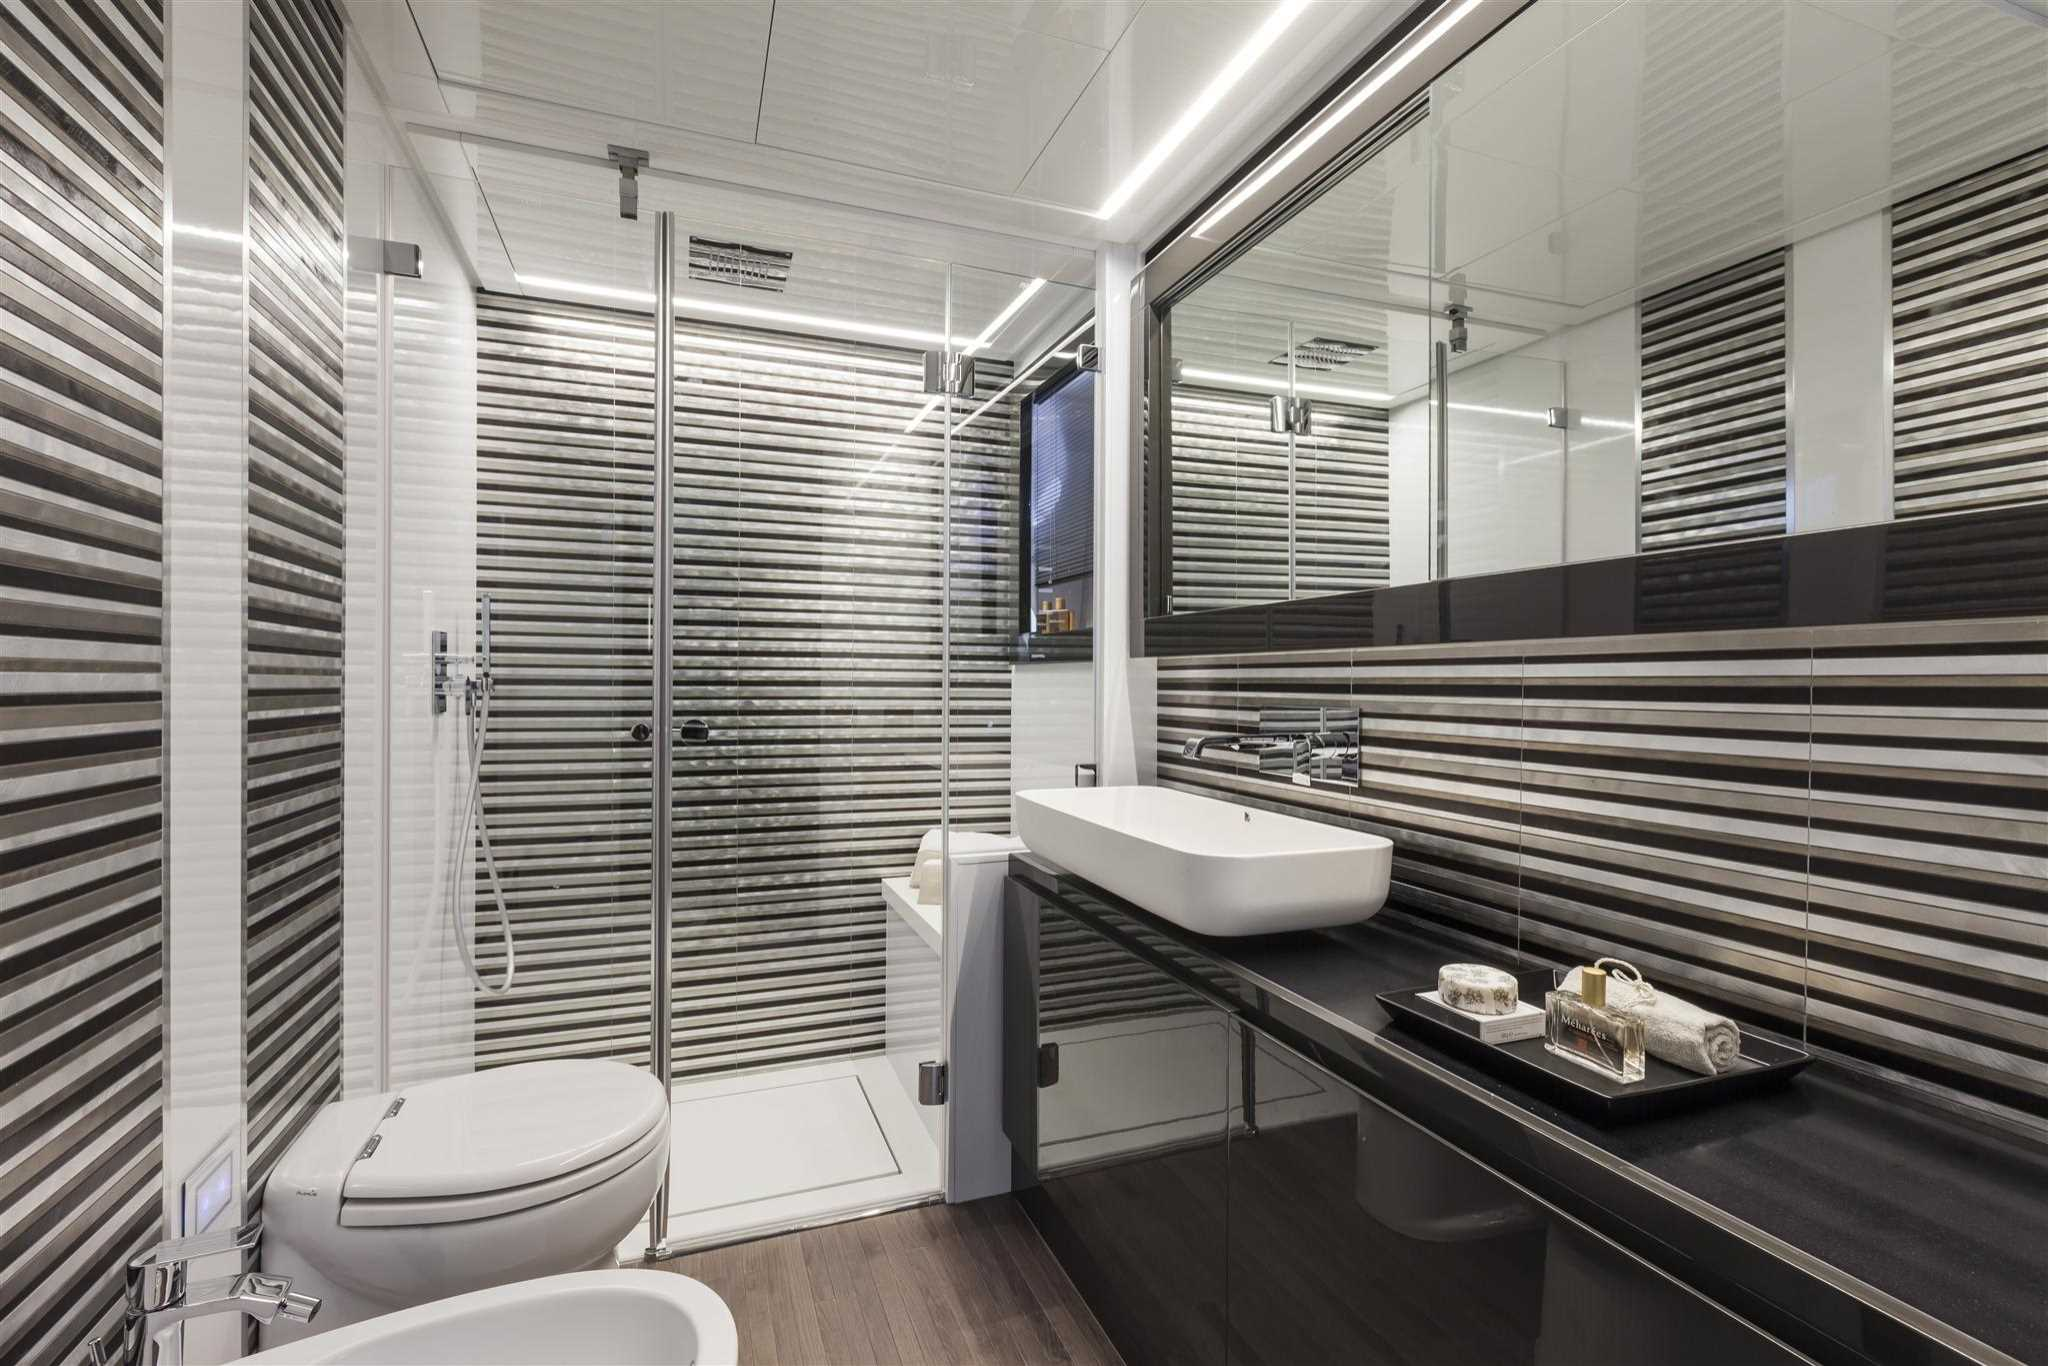 2018 Pershing 70 Yacht Master Bathroom Head